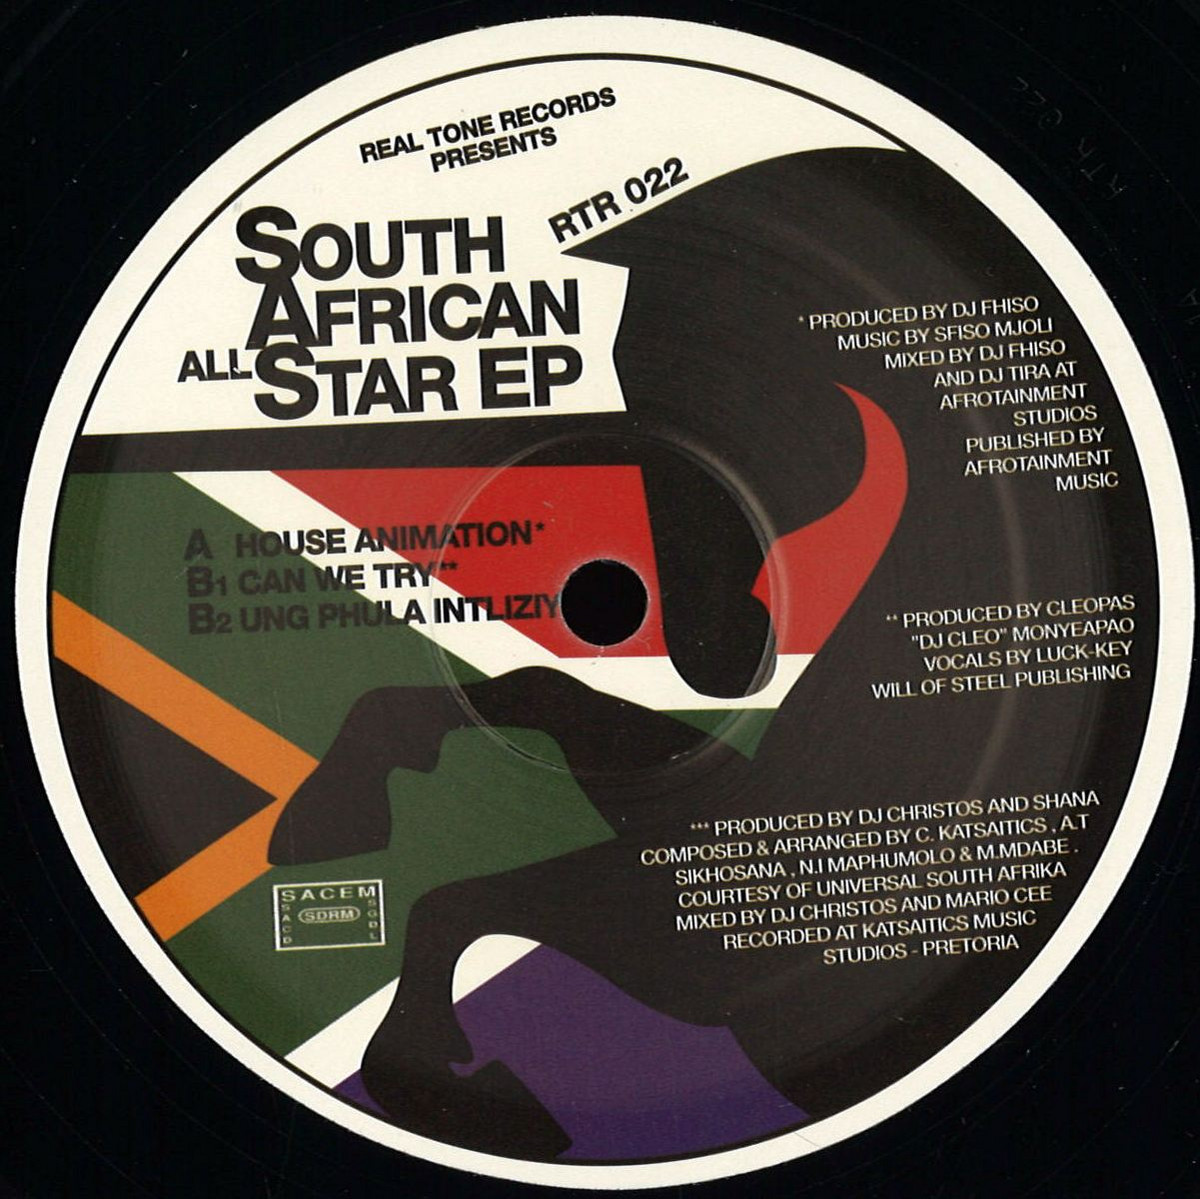 Real Tone Records - South African All Star Ep / Real Tone